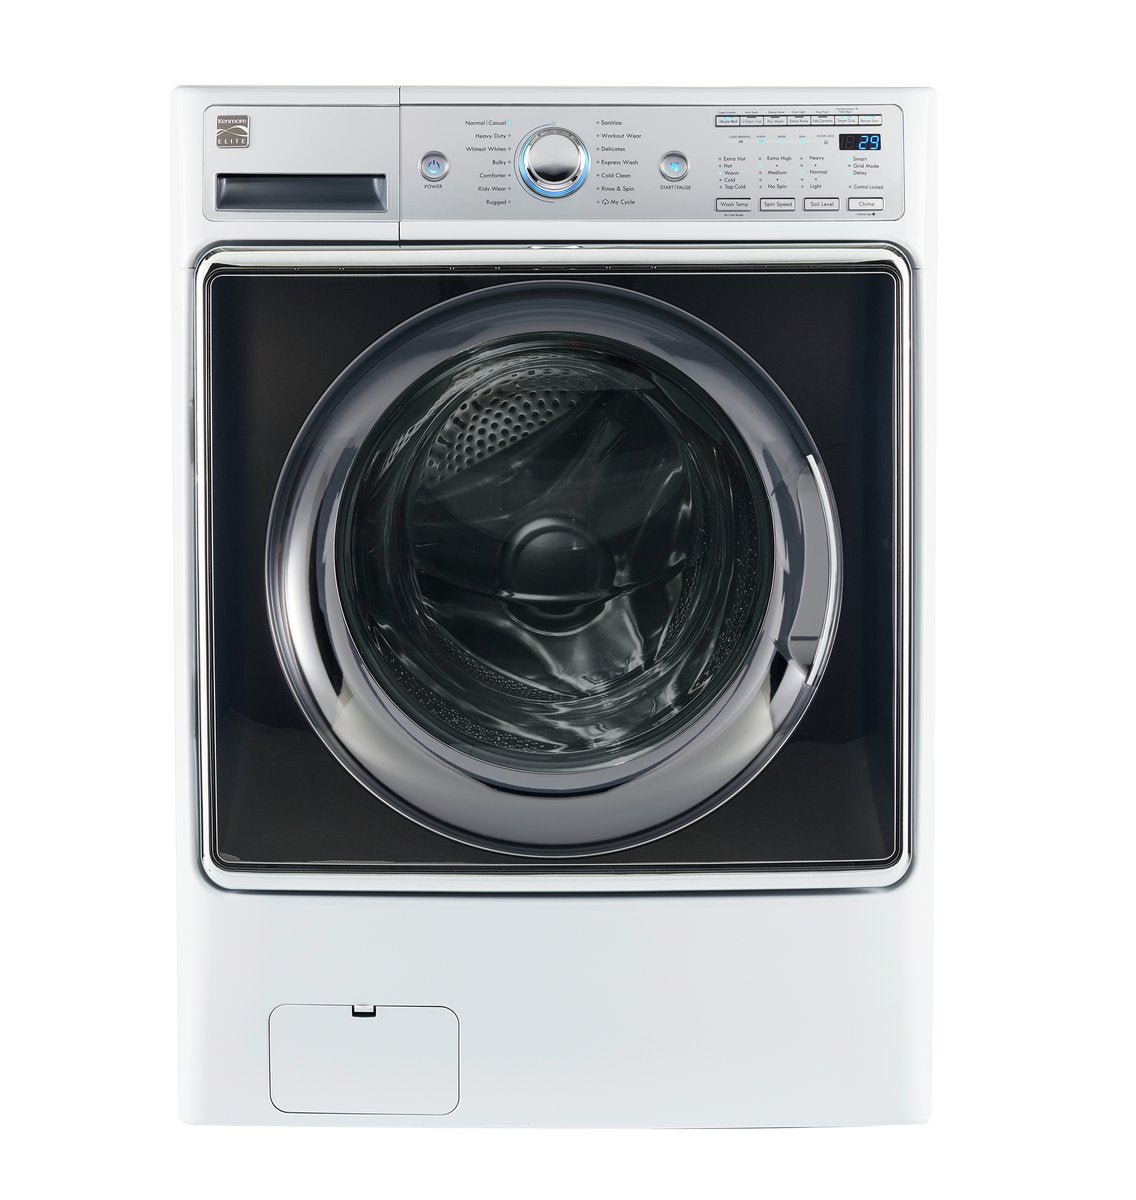 Kenmore 41982 5.2 Cubic Feet Smart Elite Front Load Washer with Accela Wash Technology, White, cu. ft